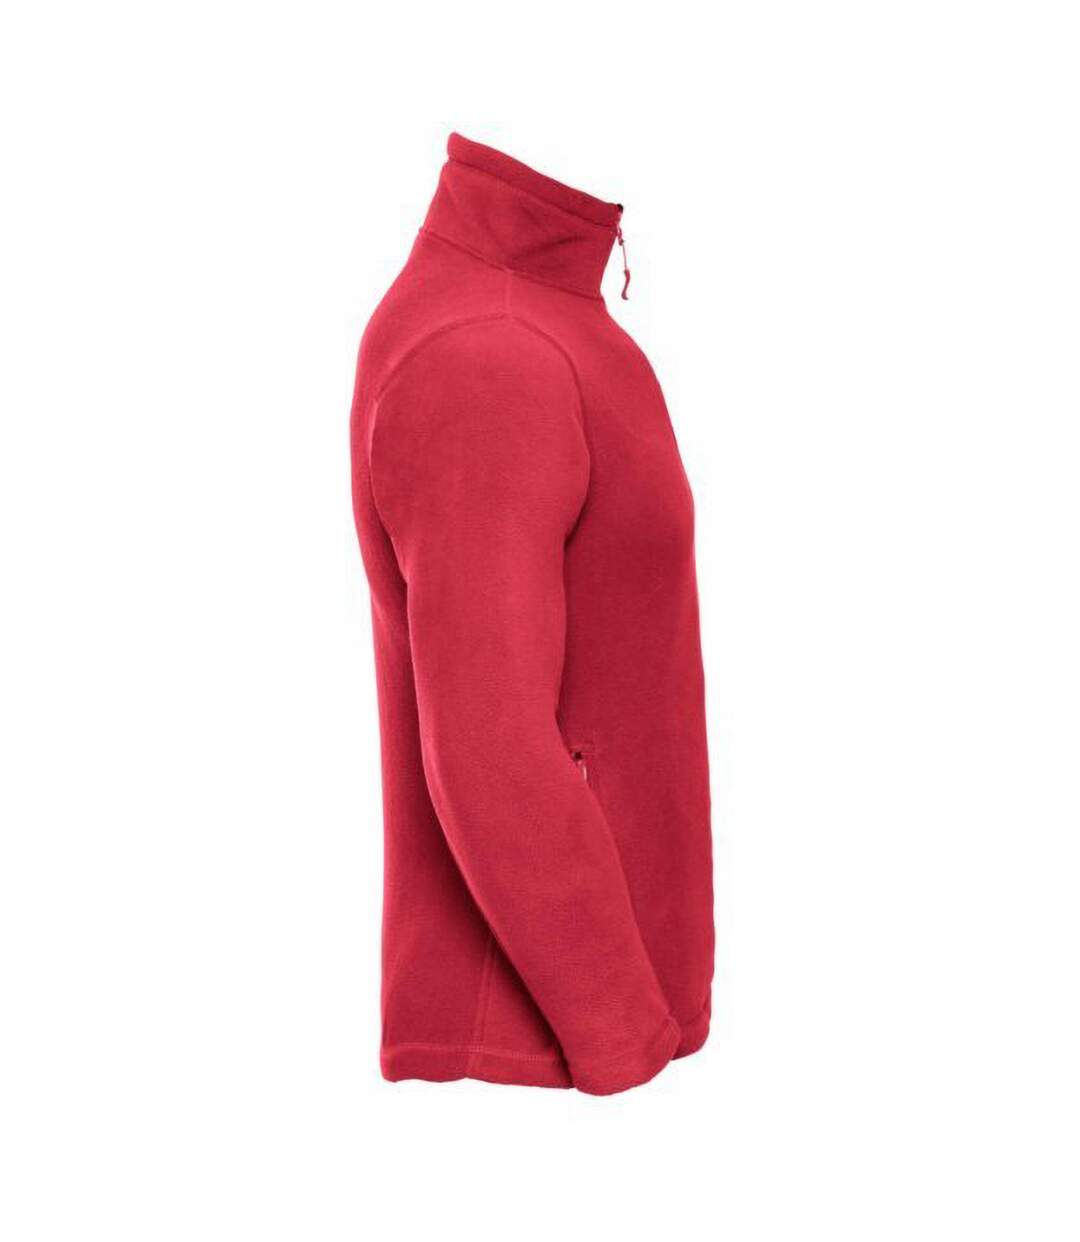 Russell Mens 1/4 Zip Outdoor Fleece Top (Classic Red) - UTBC1438